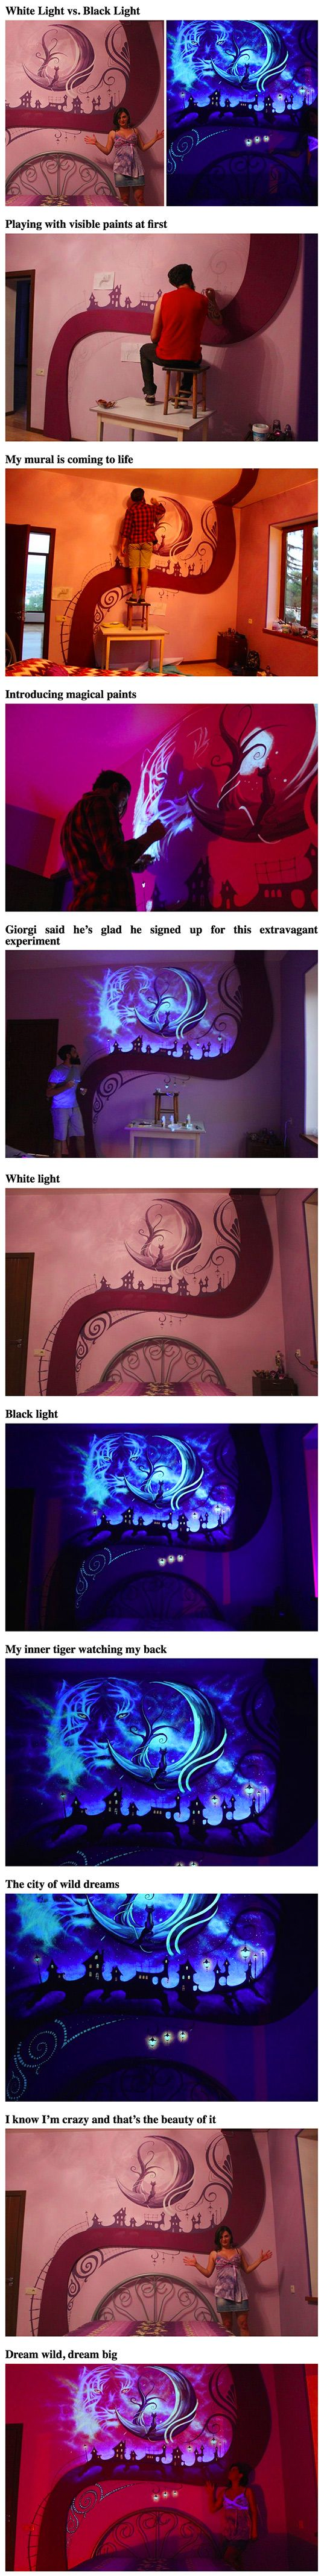 When the lights go out, this bedroom becomes a fairytale